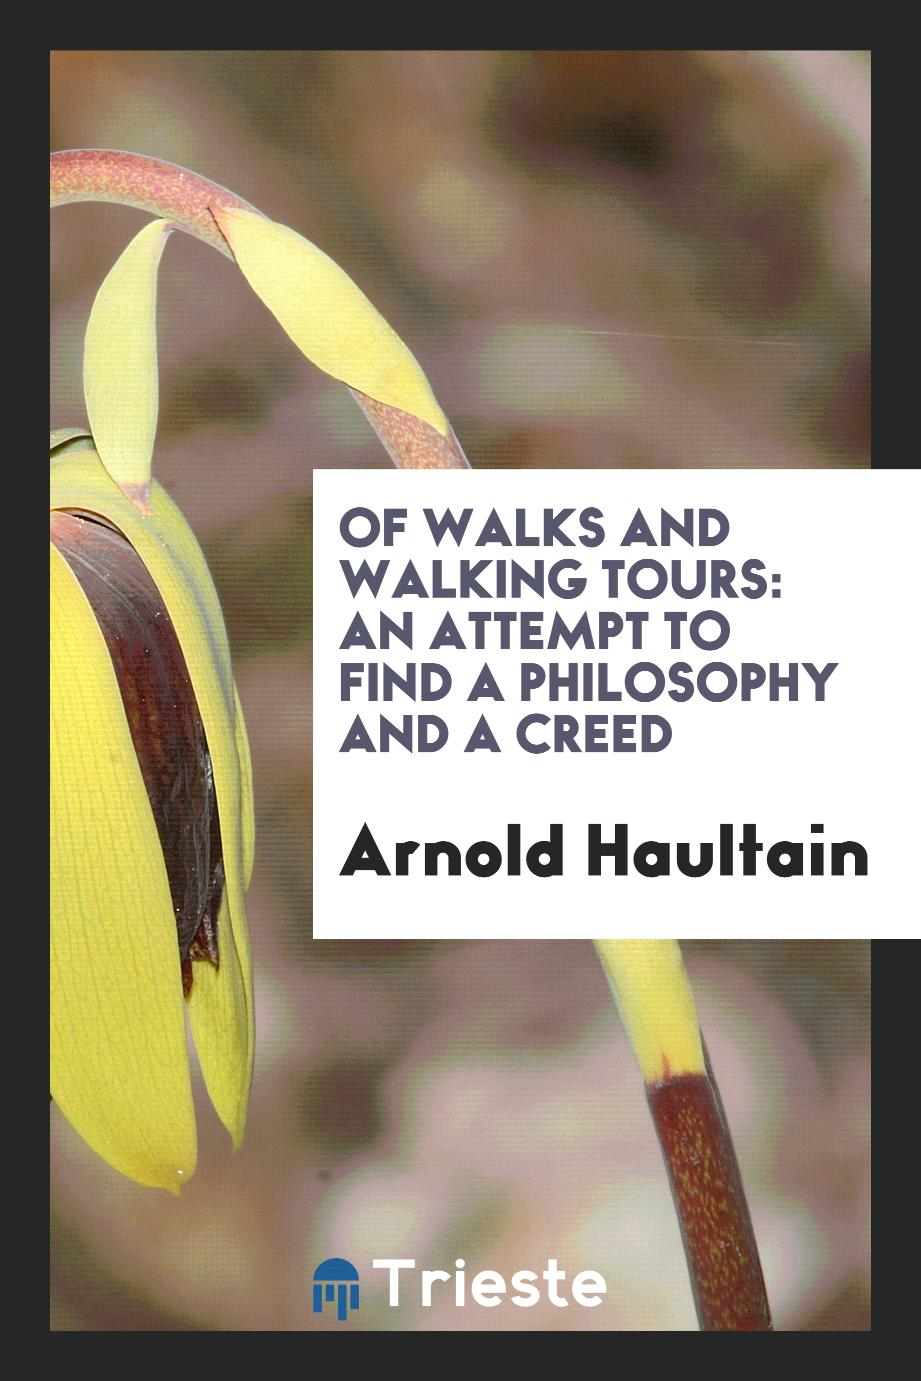 Of walks and walking tours: an attempt to find a philosophy and a creed